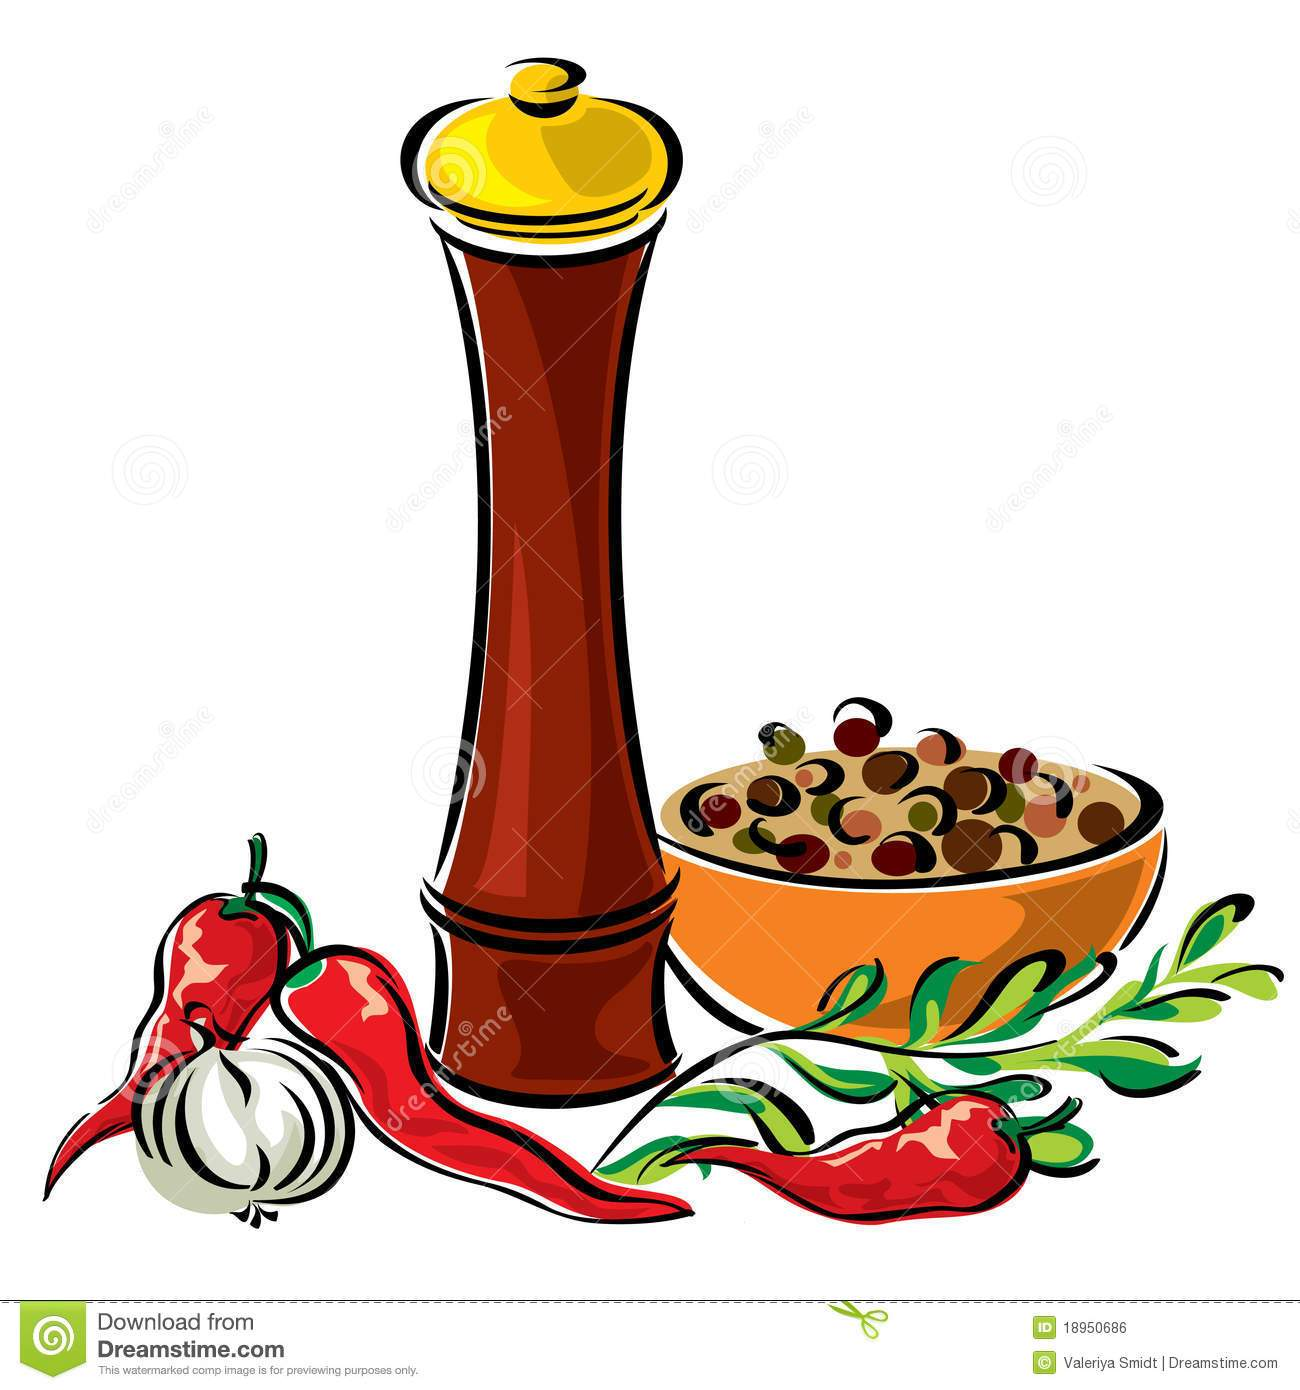 Spice clipart image transparent library Spice clipart » Clipart Portal image transparent library